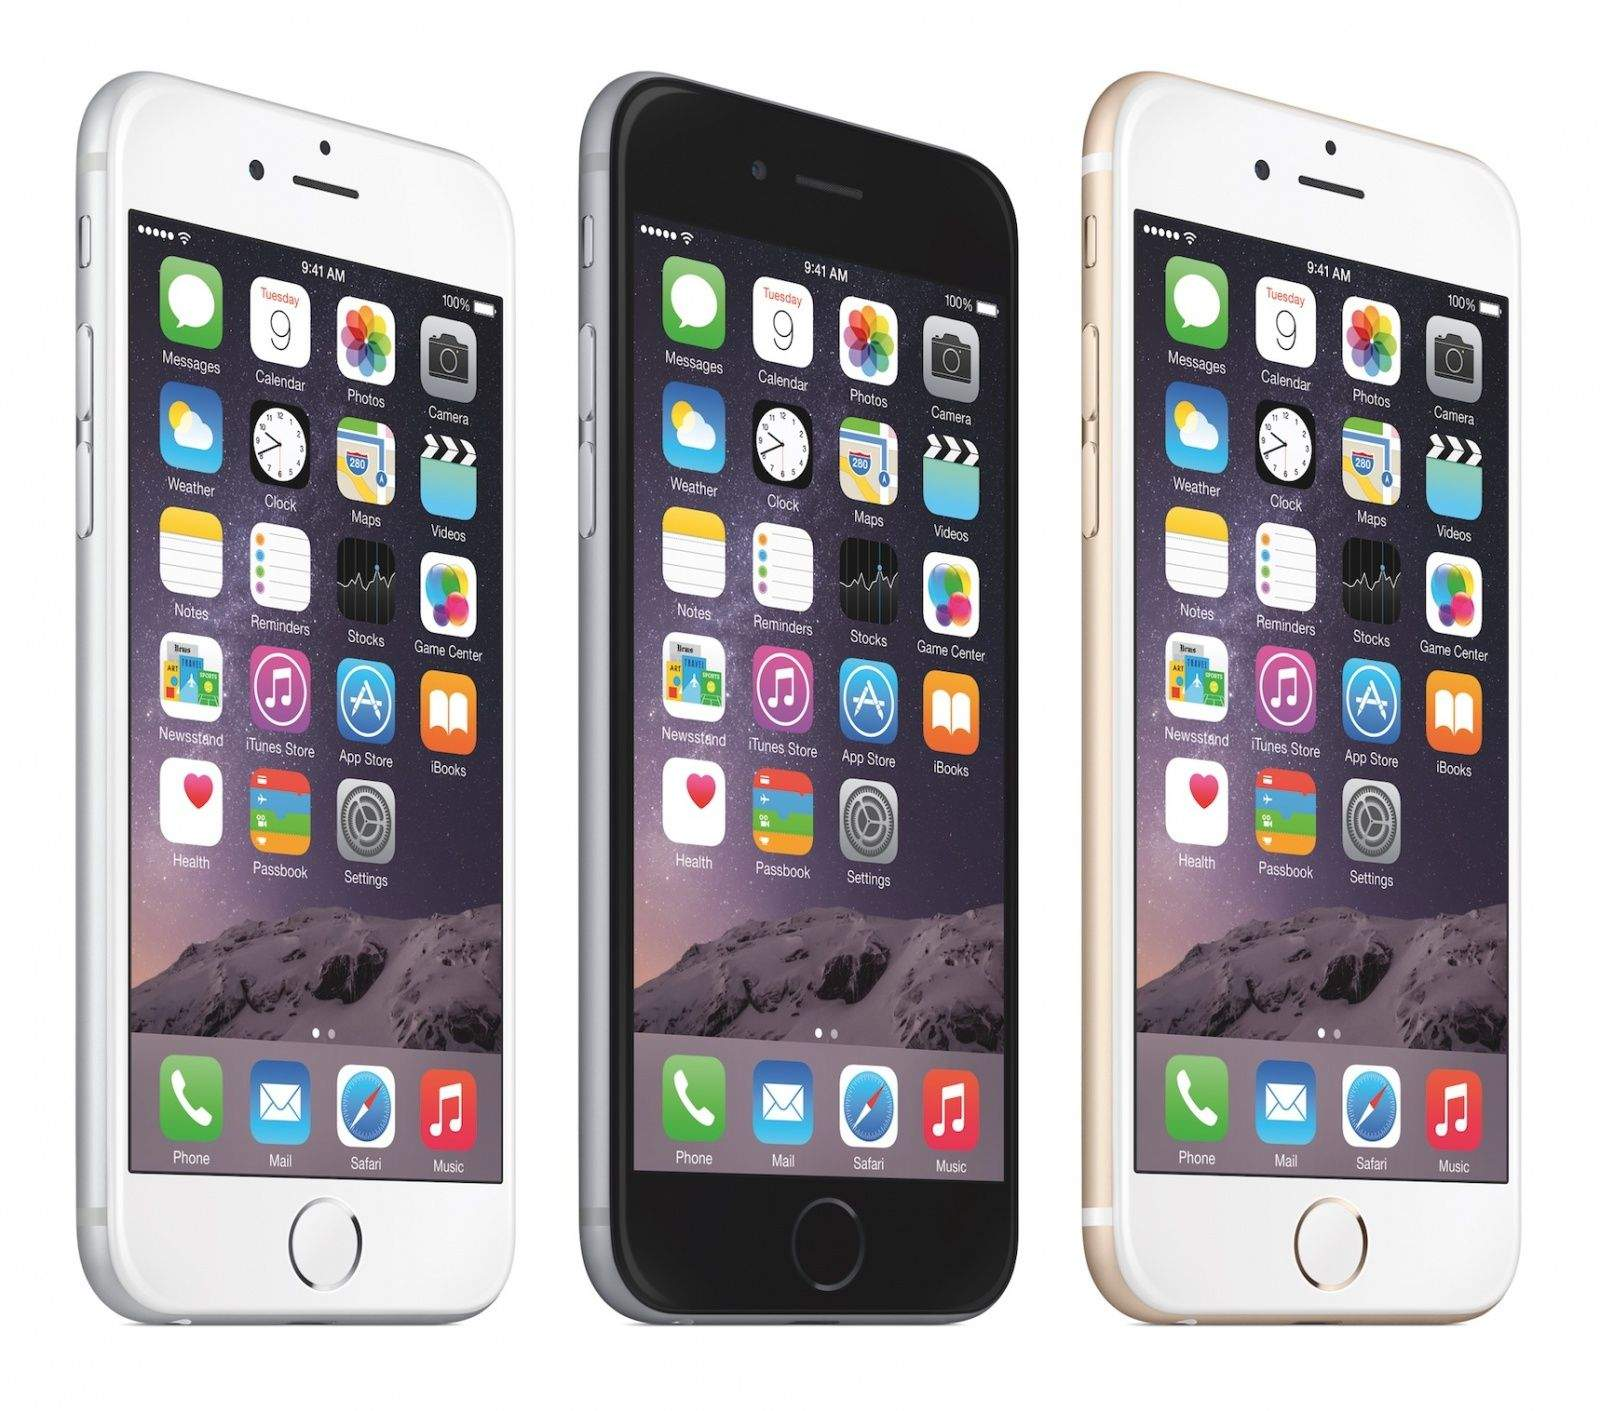 new iphone 6 how to set up your new iphone 6 the right way 12686